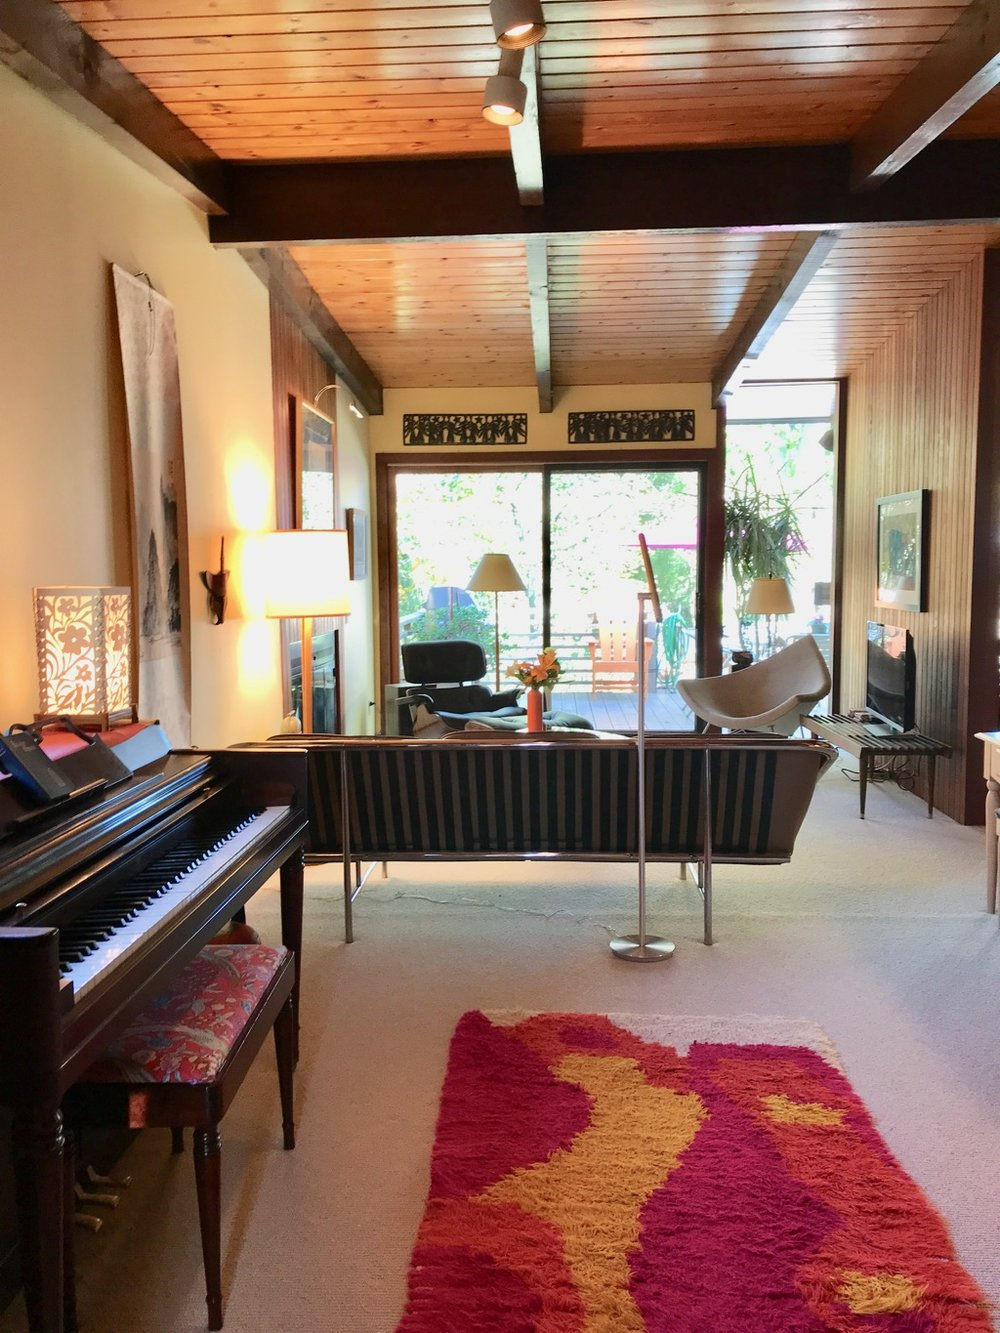 LIVING ROOM WITH PIANO.jpg